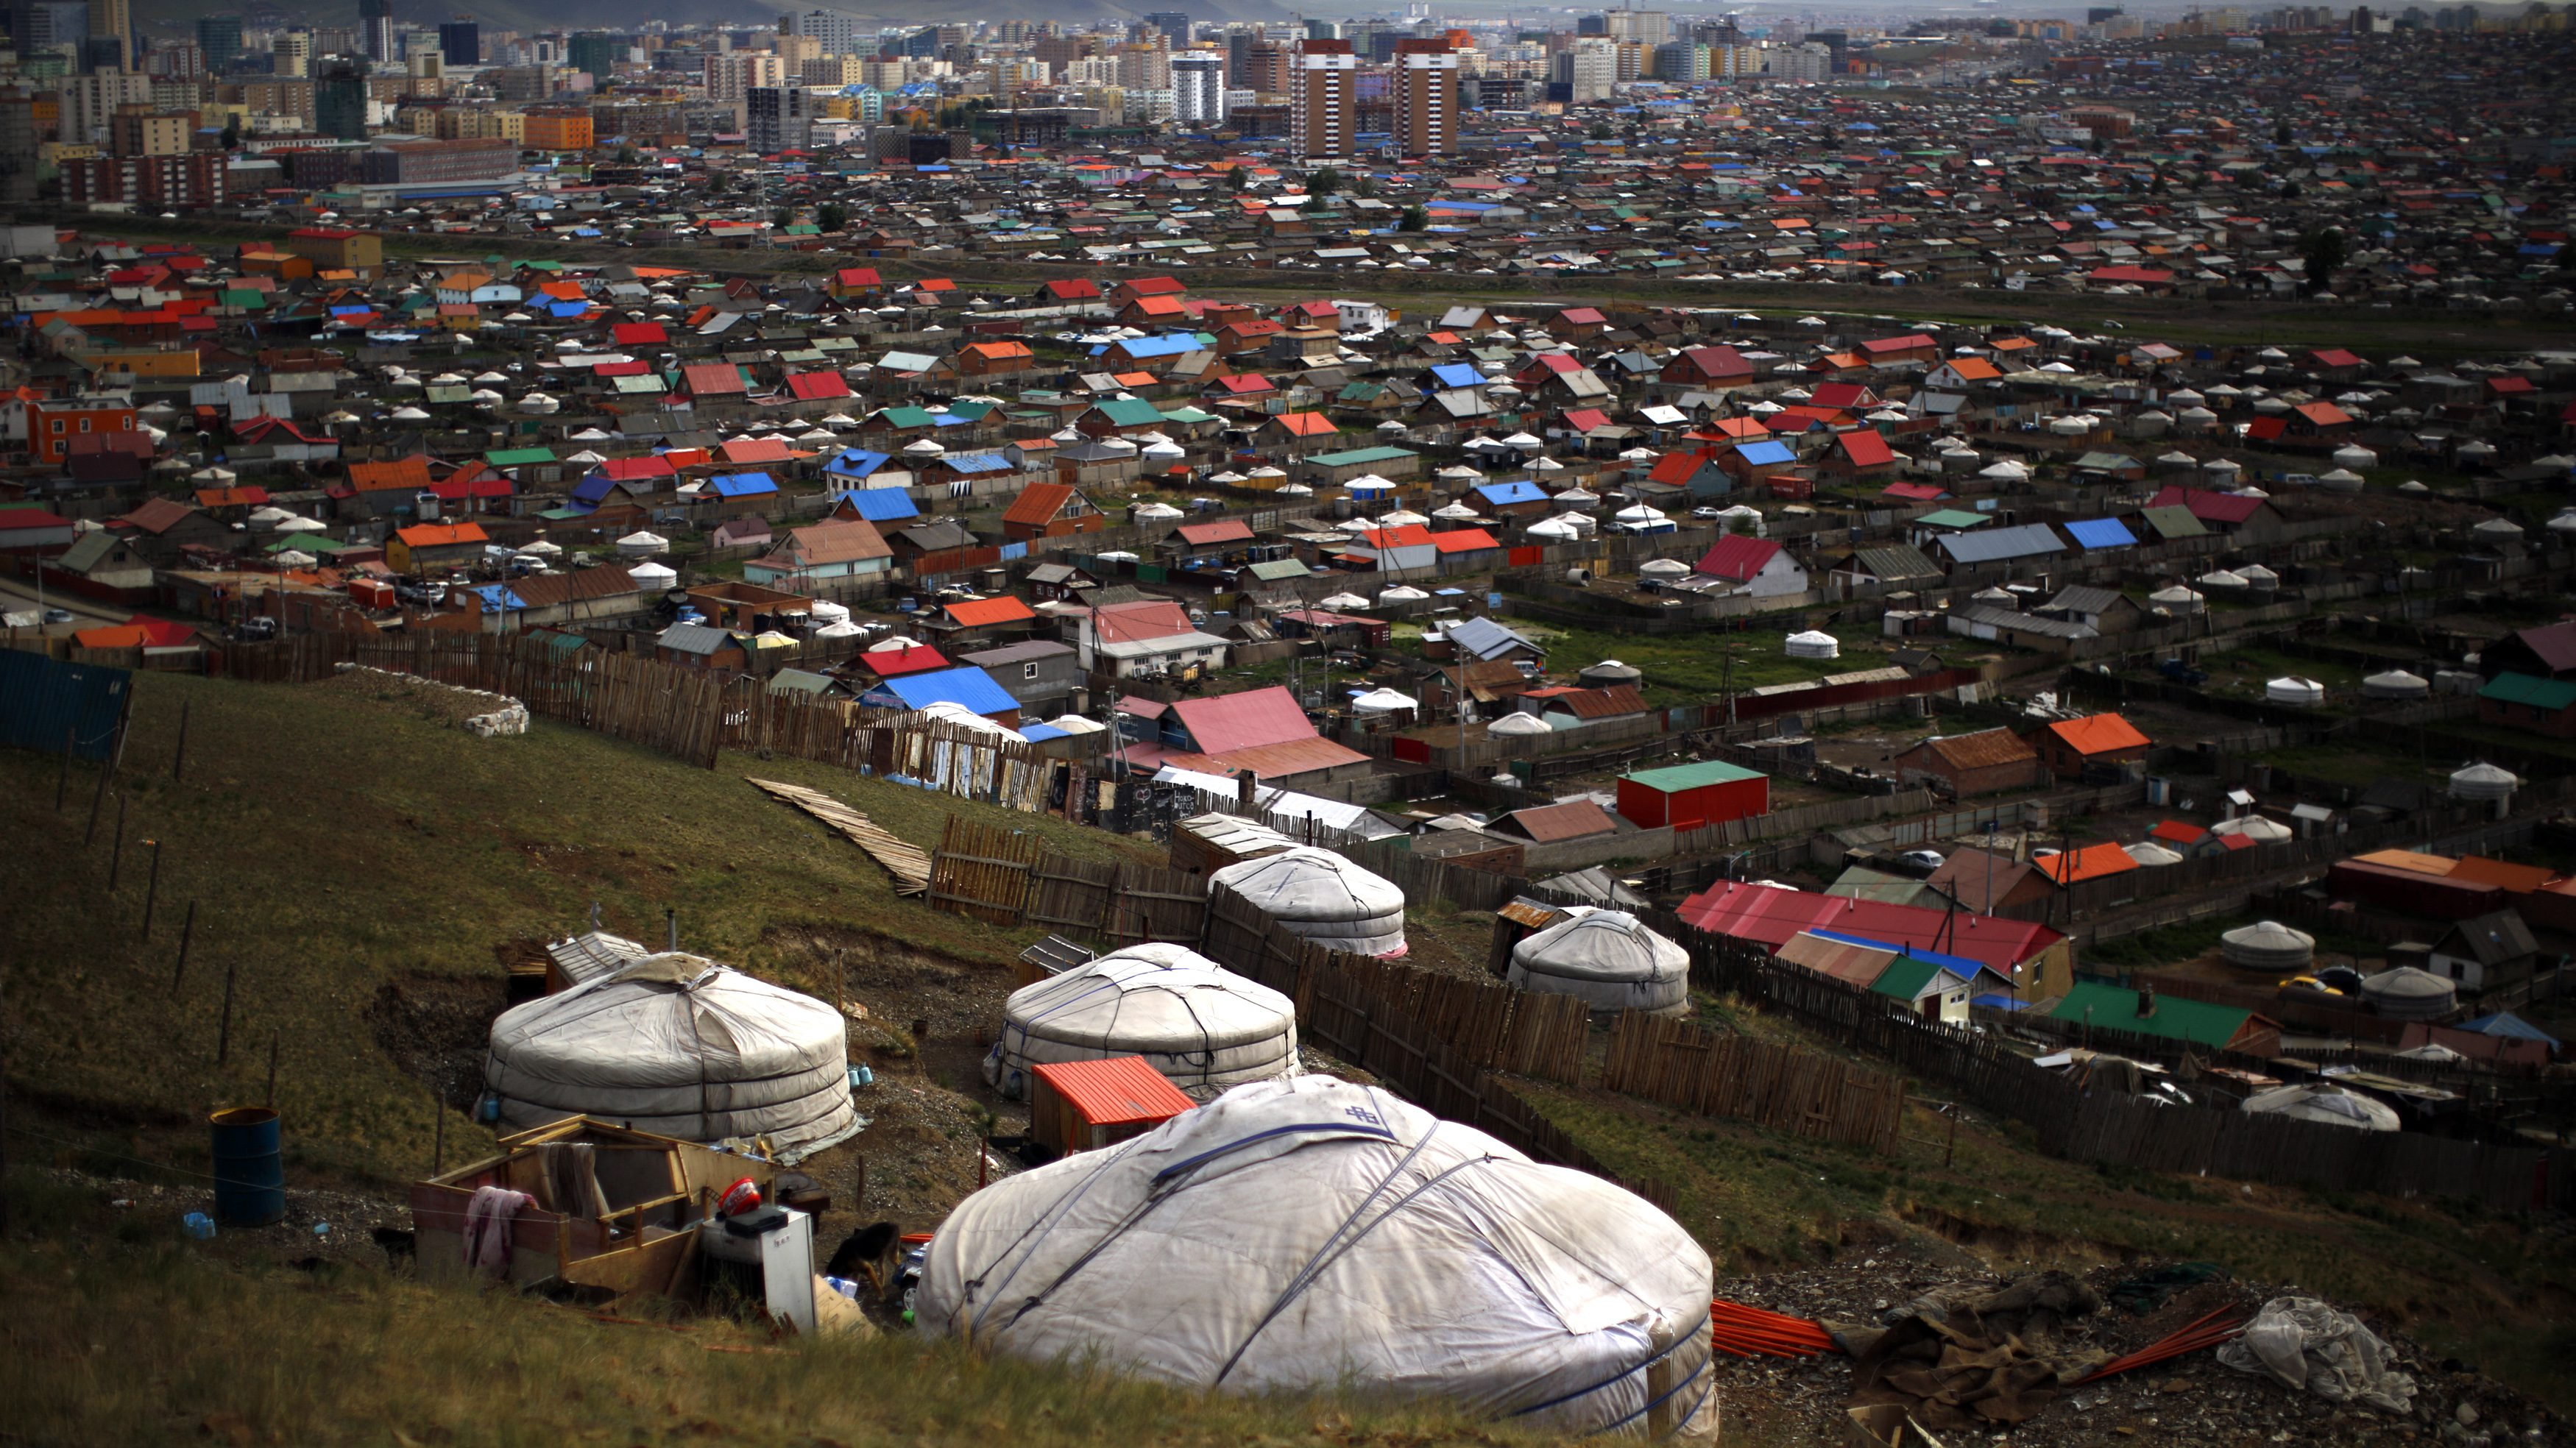 Gers, traditional Mongolian tents, are seen on a hill in an area known as a ger district in Ulan Bator June 28, 2013. Approximately 60 percent of the population of Ulan Bator live in settlements known as ger districts and in many cases residents have limited access to basic services such as water and sanitation. According to a 2010 National Population Center census, every year between thirty and forty thousand people migrate from the countryside to the capital Ulan Bator. Ger districts in the city have been expanding rapidly in recent years. Mongolia is the world's least densely populated country, with 2.8 million people spread across an area around three times the size of France. Picture taken June 28, 2013.